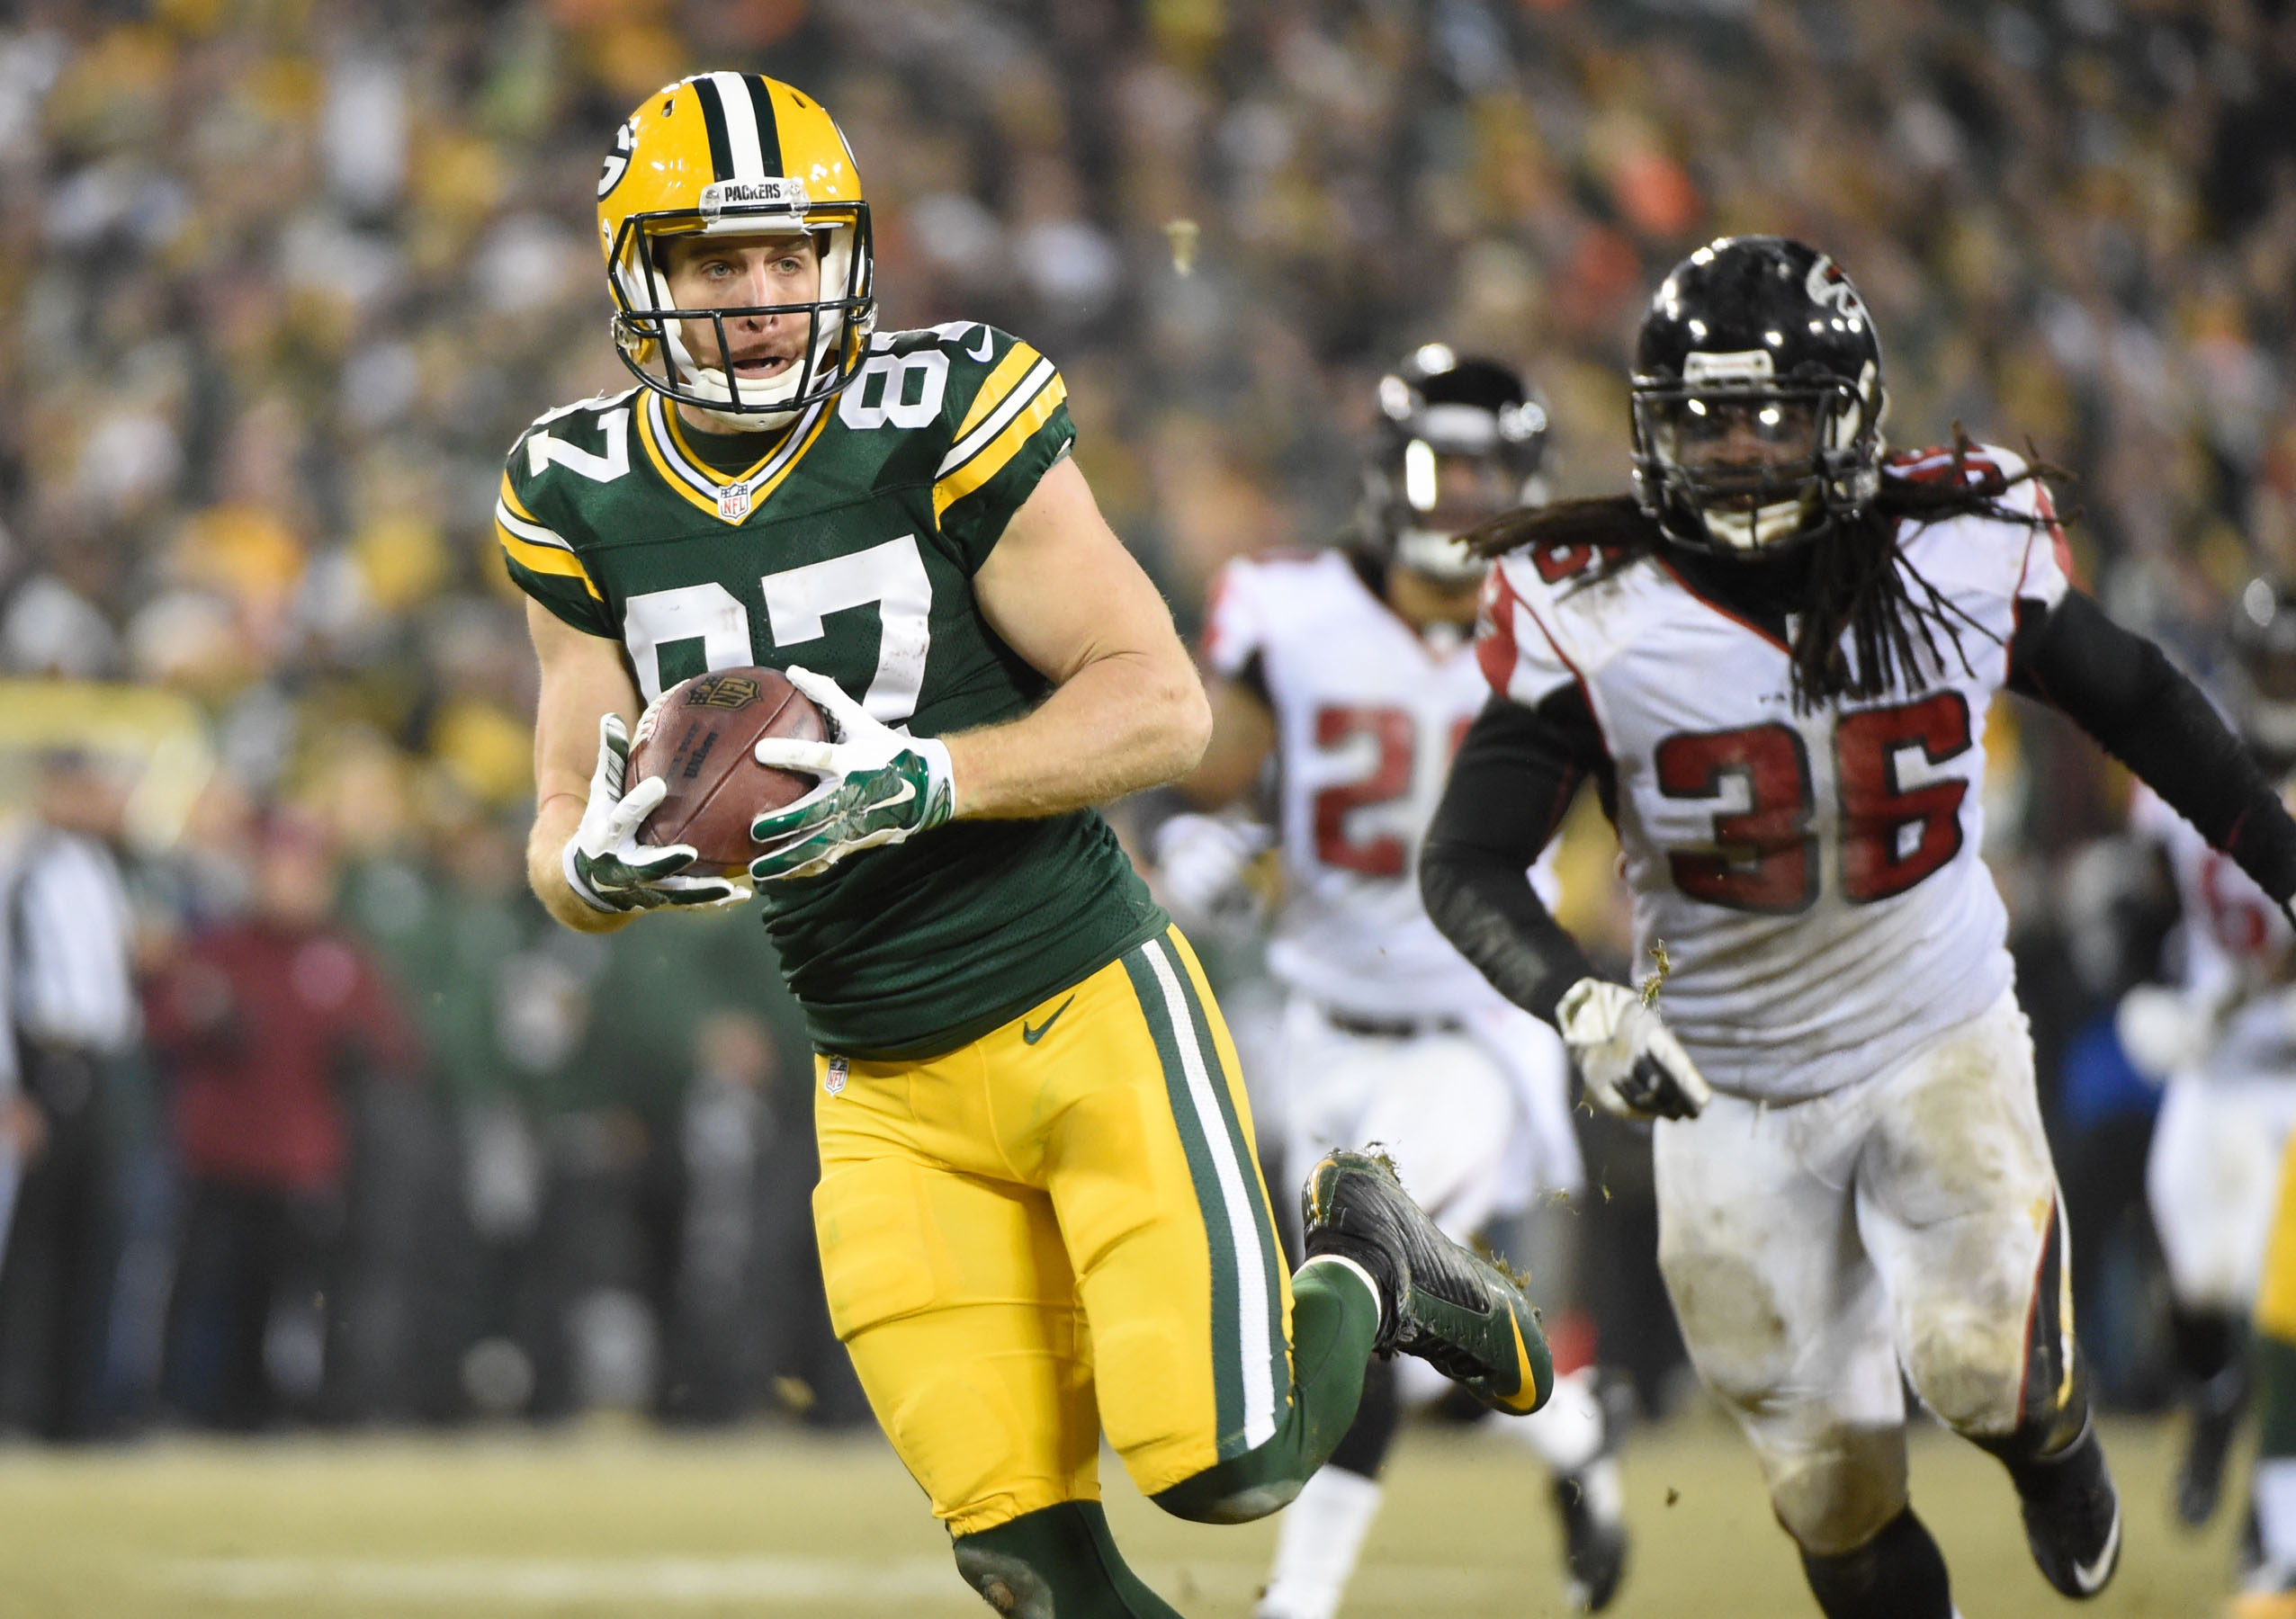 On a week where nearly every K-Stater in the NFL put up almost no statistics, Jordy Nelson's 146-yard, two-touchdown day stood out even more than usual.